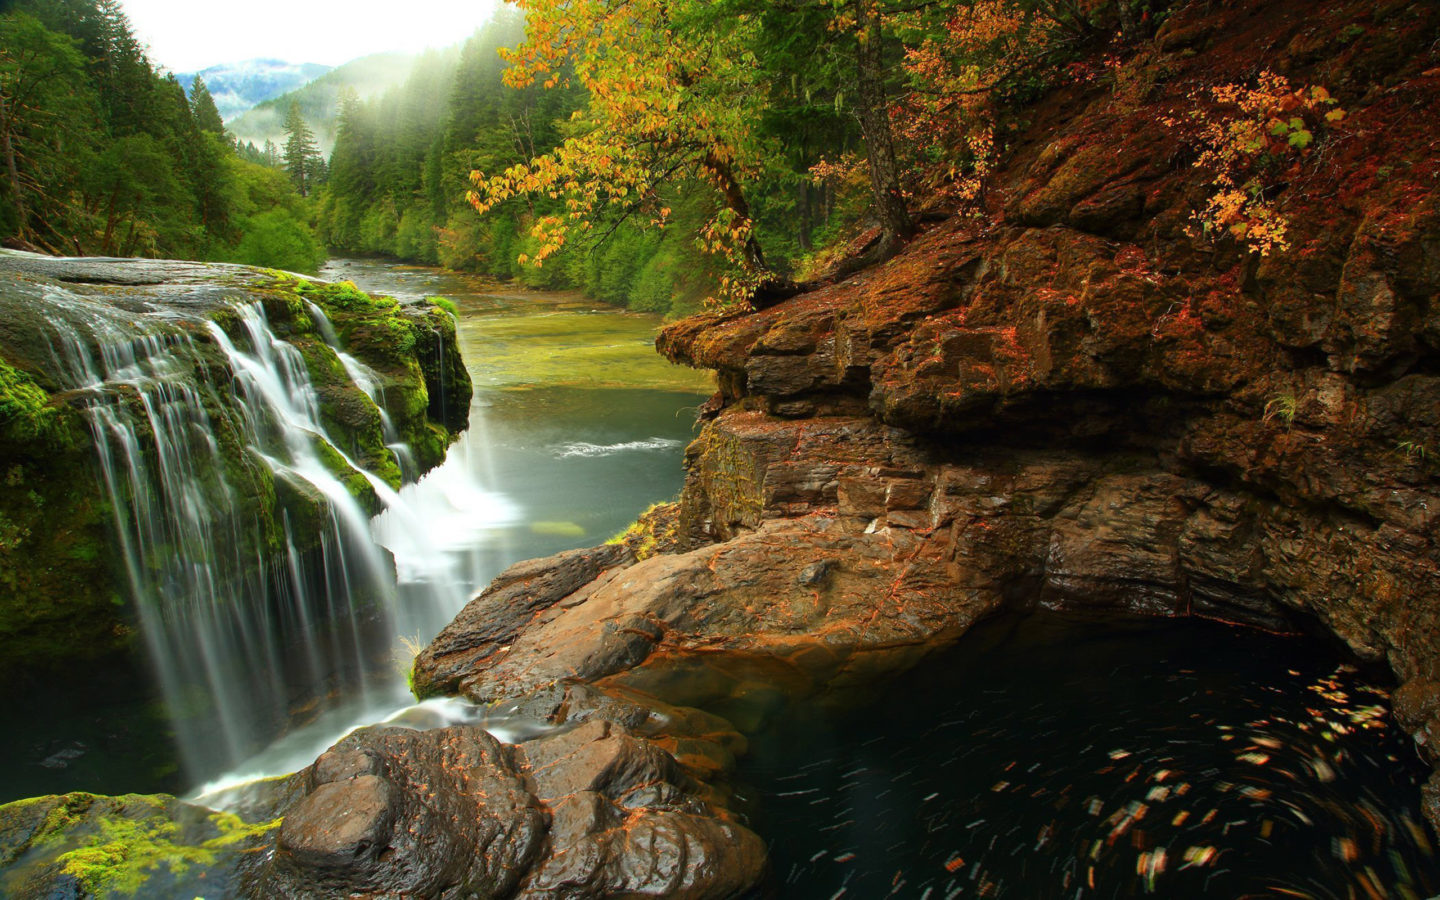 Falls Hd Wallpaper Free Download Lewis River Falls At Gifford Pinchot National Forest